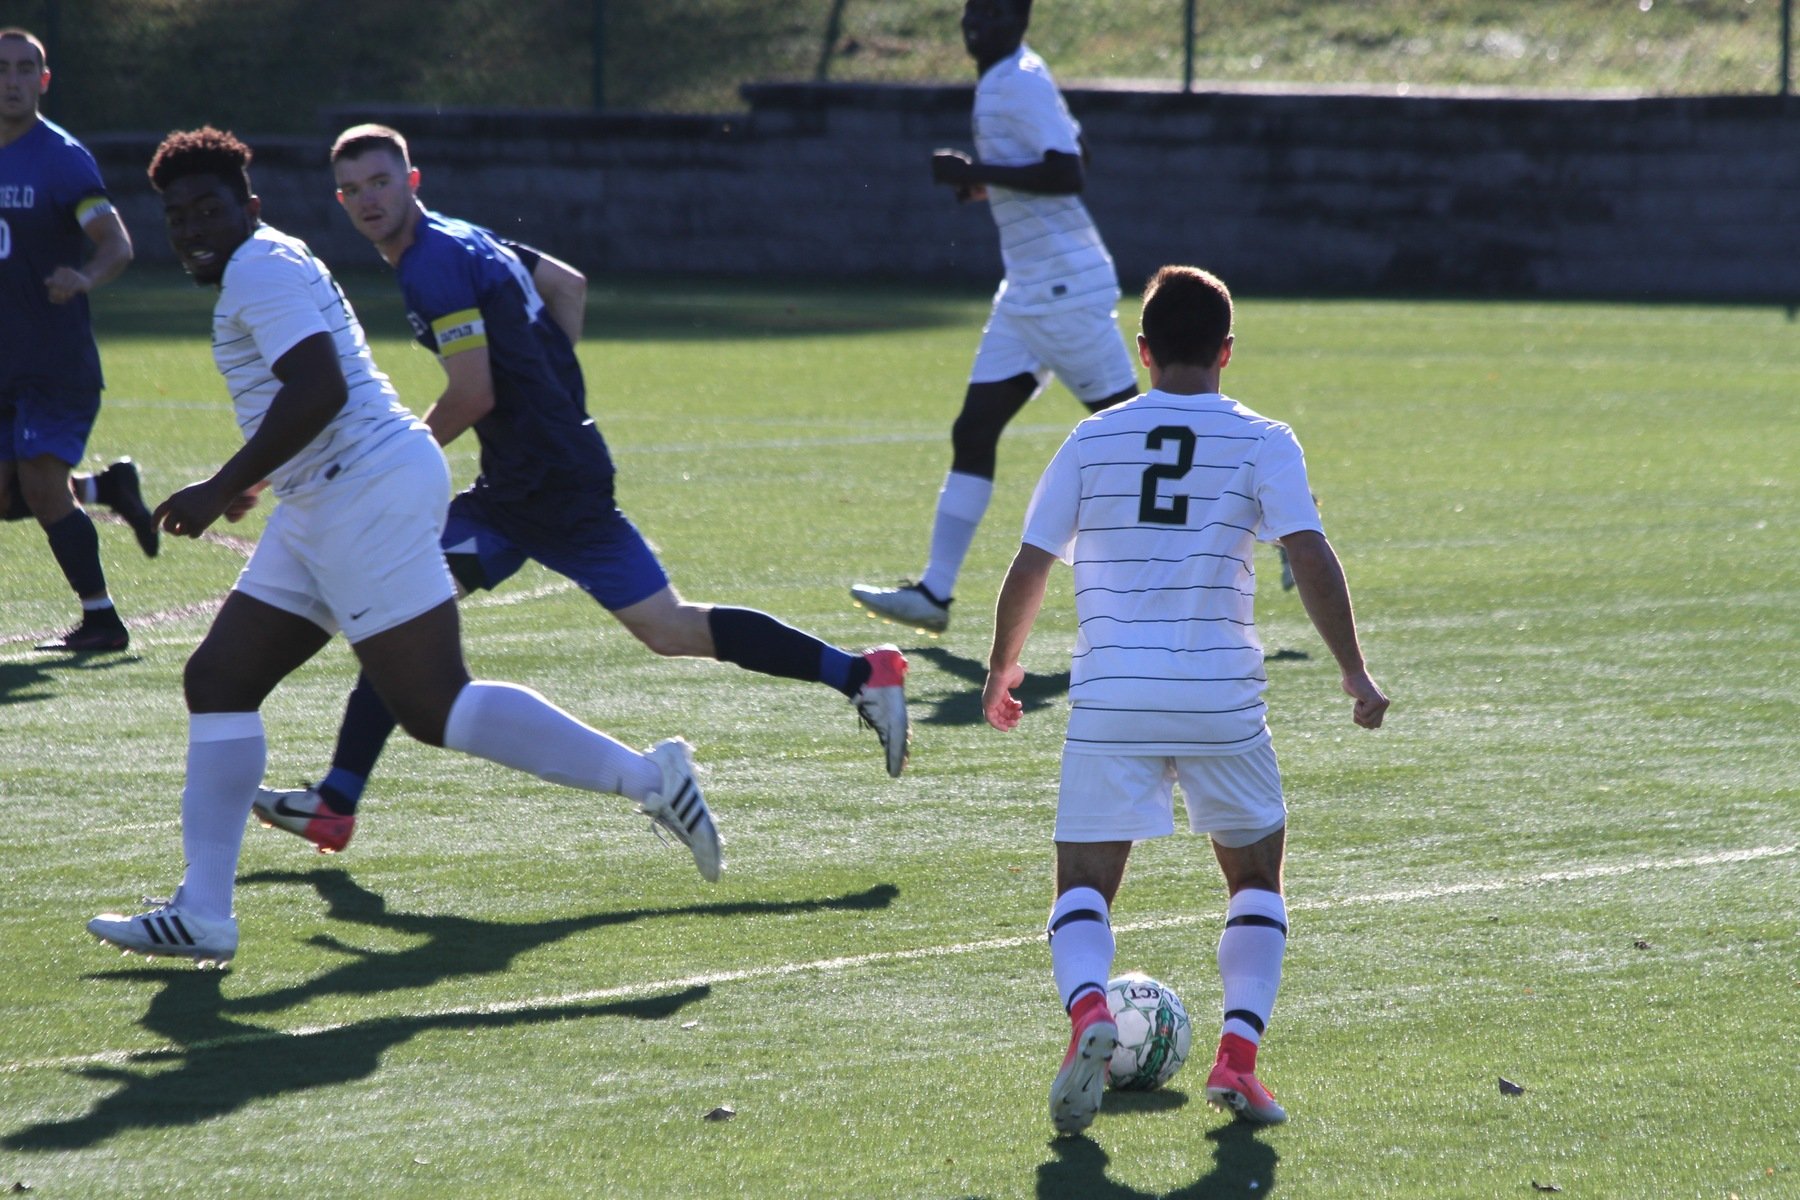 Lesley Edges Men's Soccer In Overtime